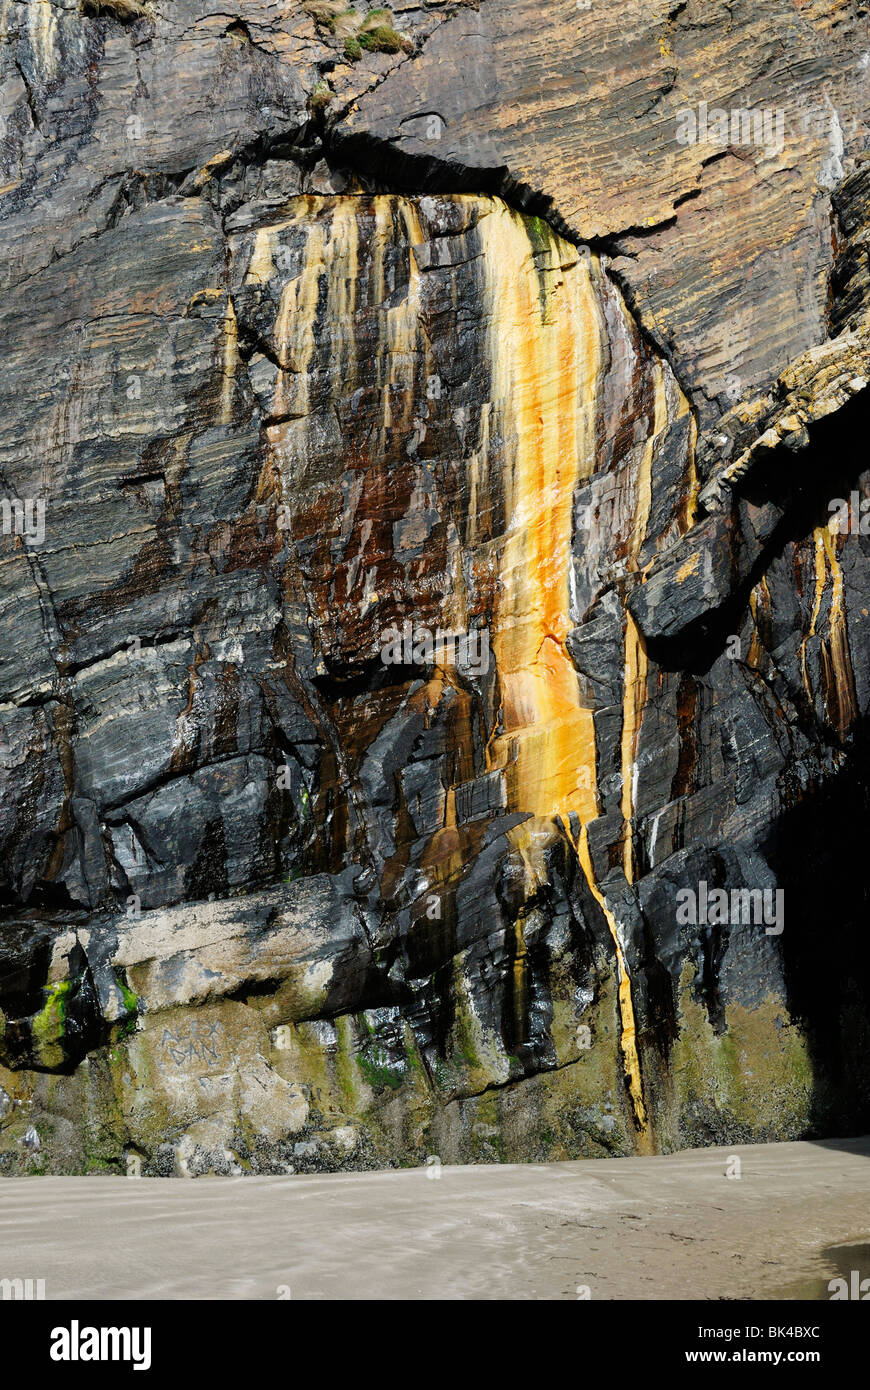 Mineral staining on a rockface on a sea cliff. - Stock Image